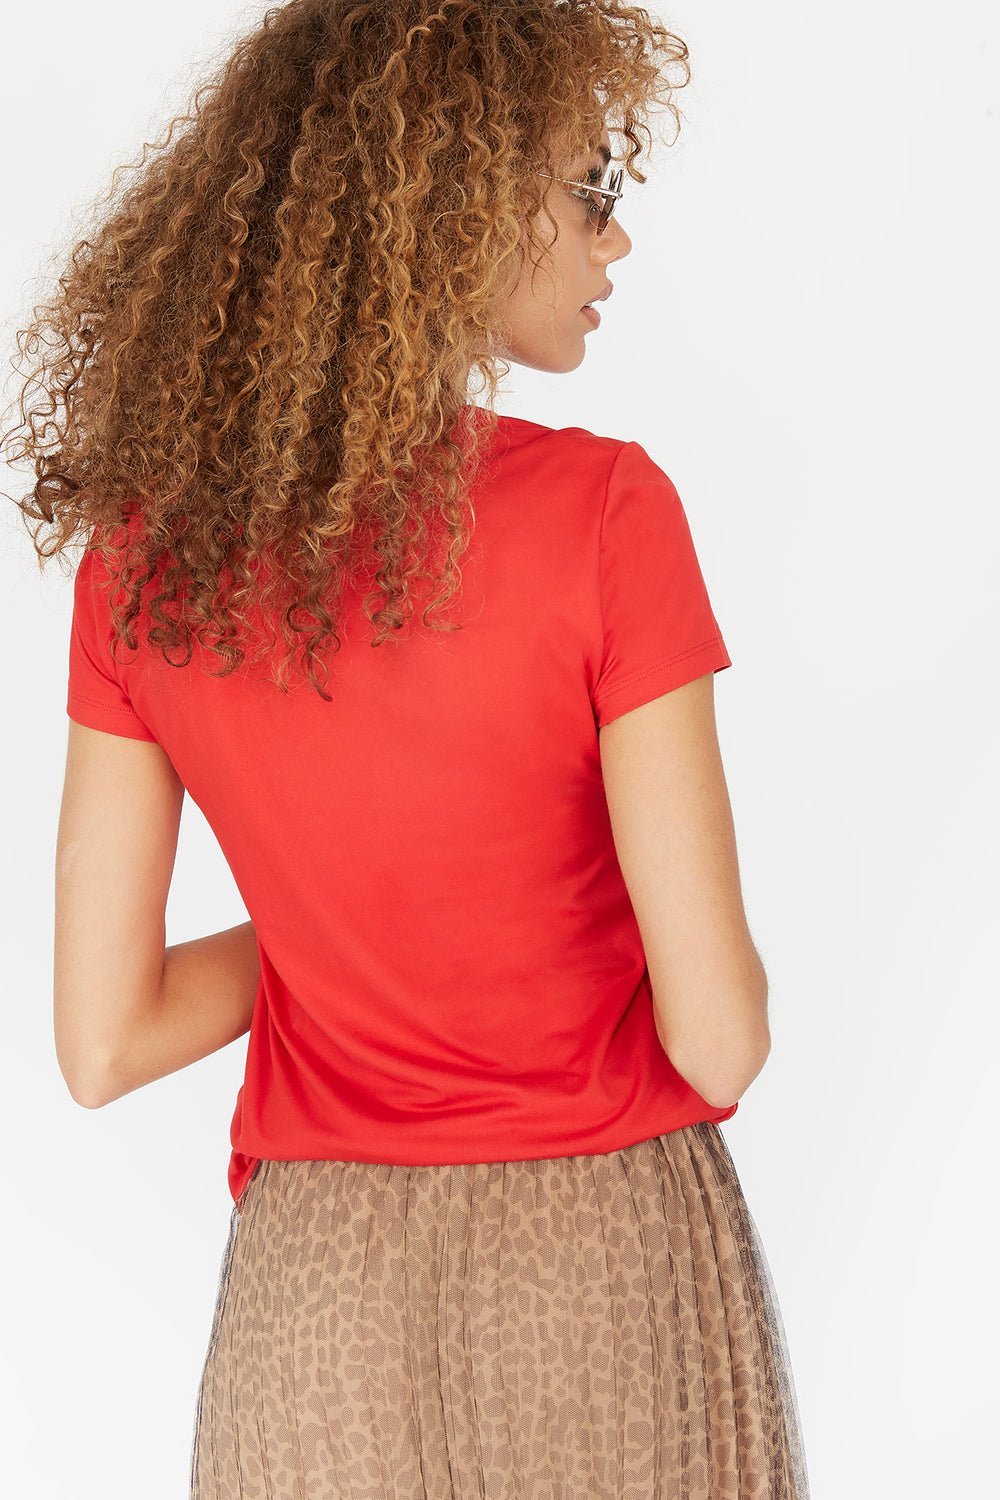 Soft Graphic Printed Back Off T-Shirt Red